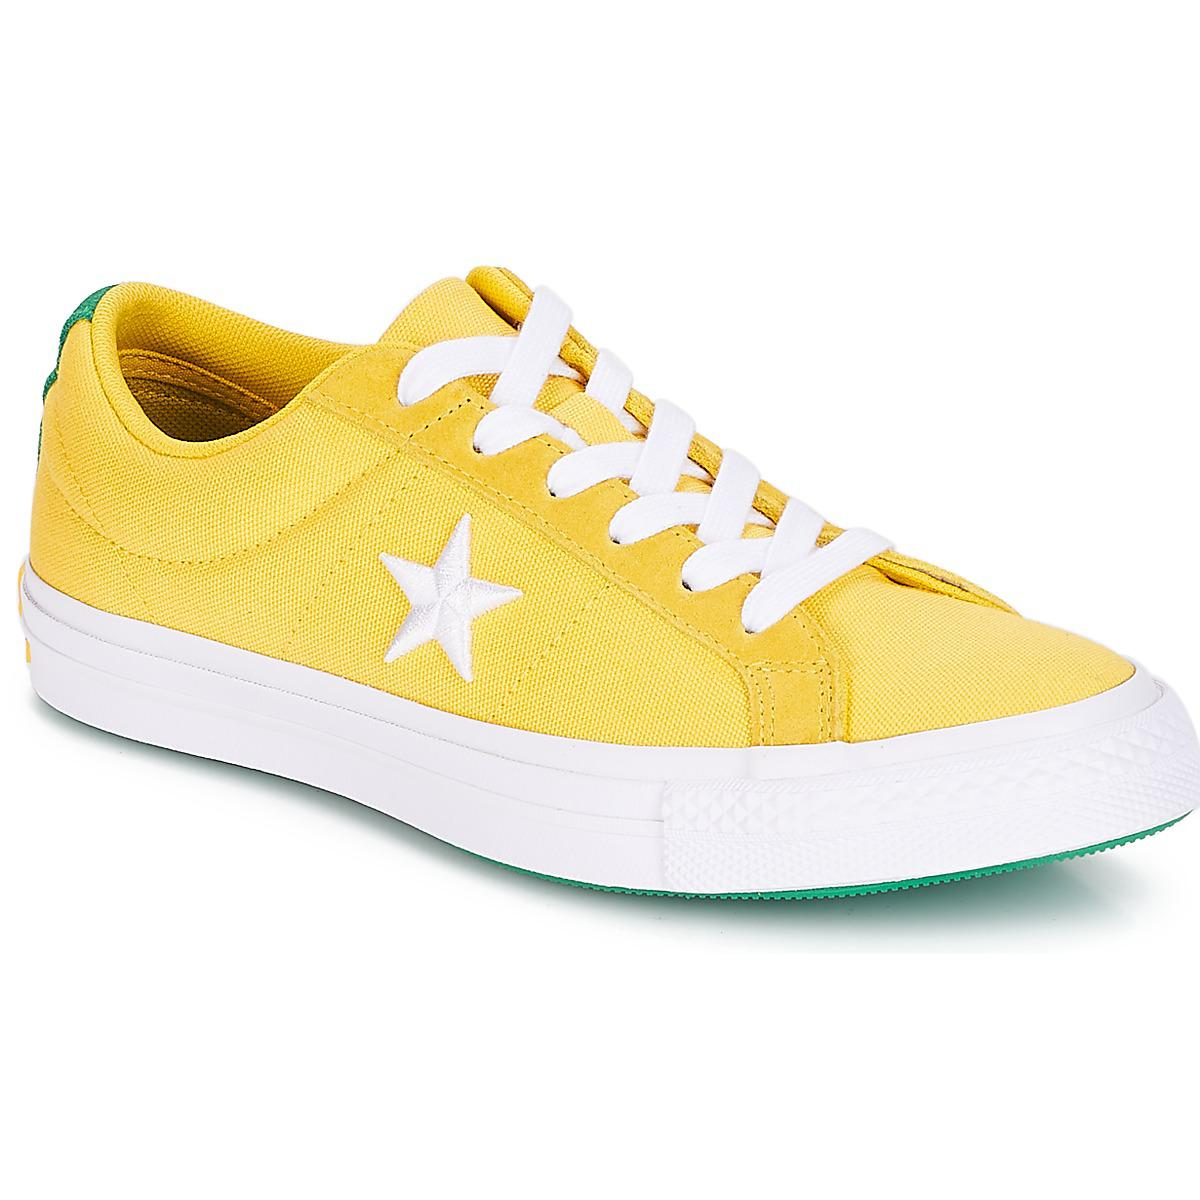 7554c74814c4fa Converse One Star Women s Shoes (trainers) In Yellow in Yellow ...